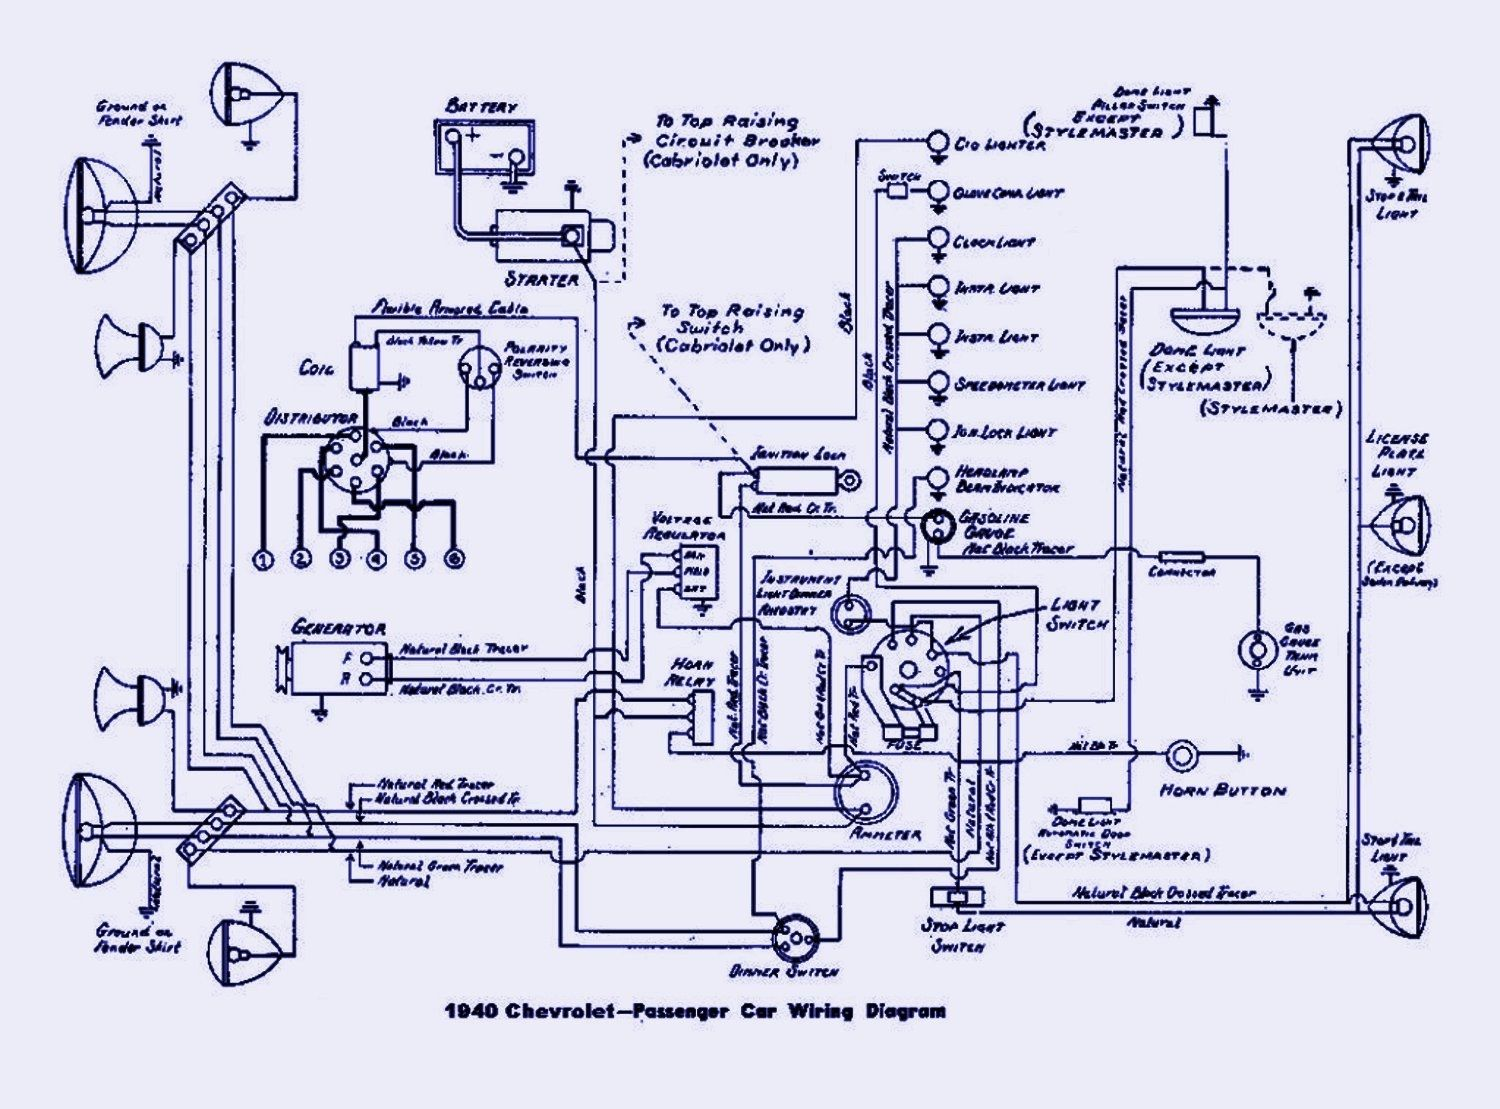 Car Wiring Diagrams Explained | Wiring Diagram on automotive wire, automotive voltage regulator circuit diagram, engine diagrams, electronic circuit diagrams, air conditioning diagrams, lighting diagrams, automotive schematic diagram, car diagrams, interior design diagrams, mechanical diagrams, wiring diagrams, refrigeration diagrams, starter diagrams, heating diagrams, engineering diagrams, automotive wiring, transportation diagrams, truck diagrams, plumbing diagrams, fluid power diagrams,